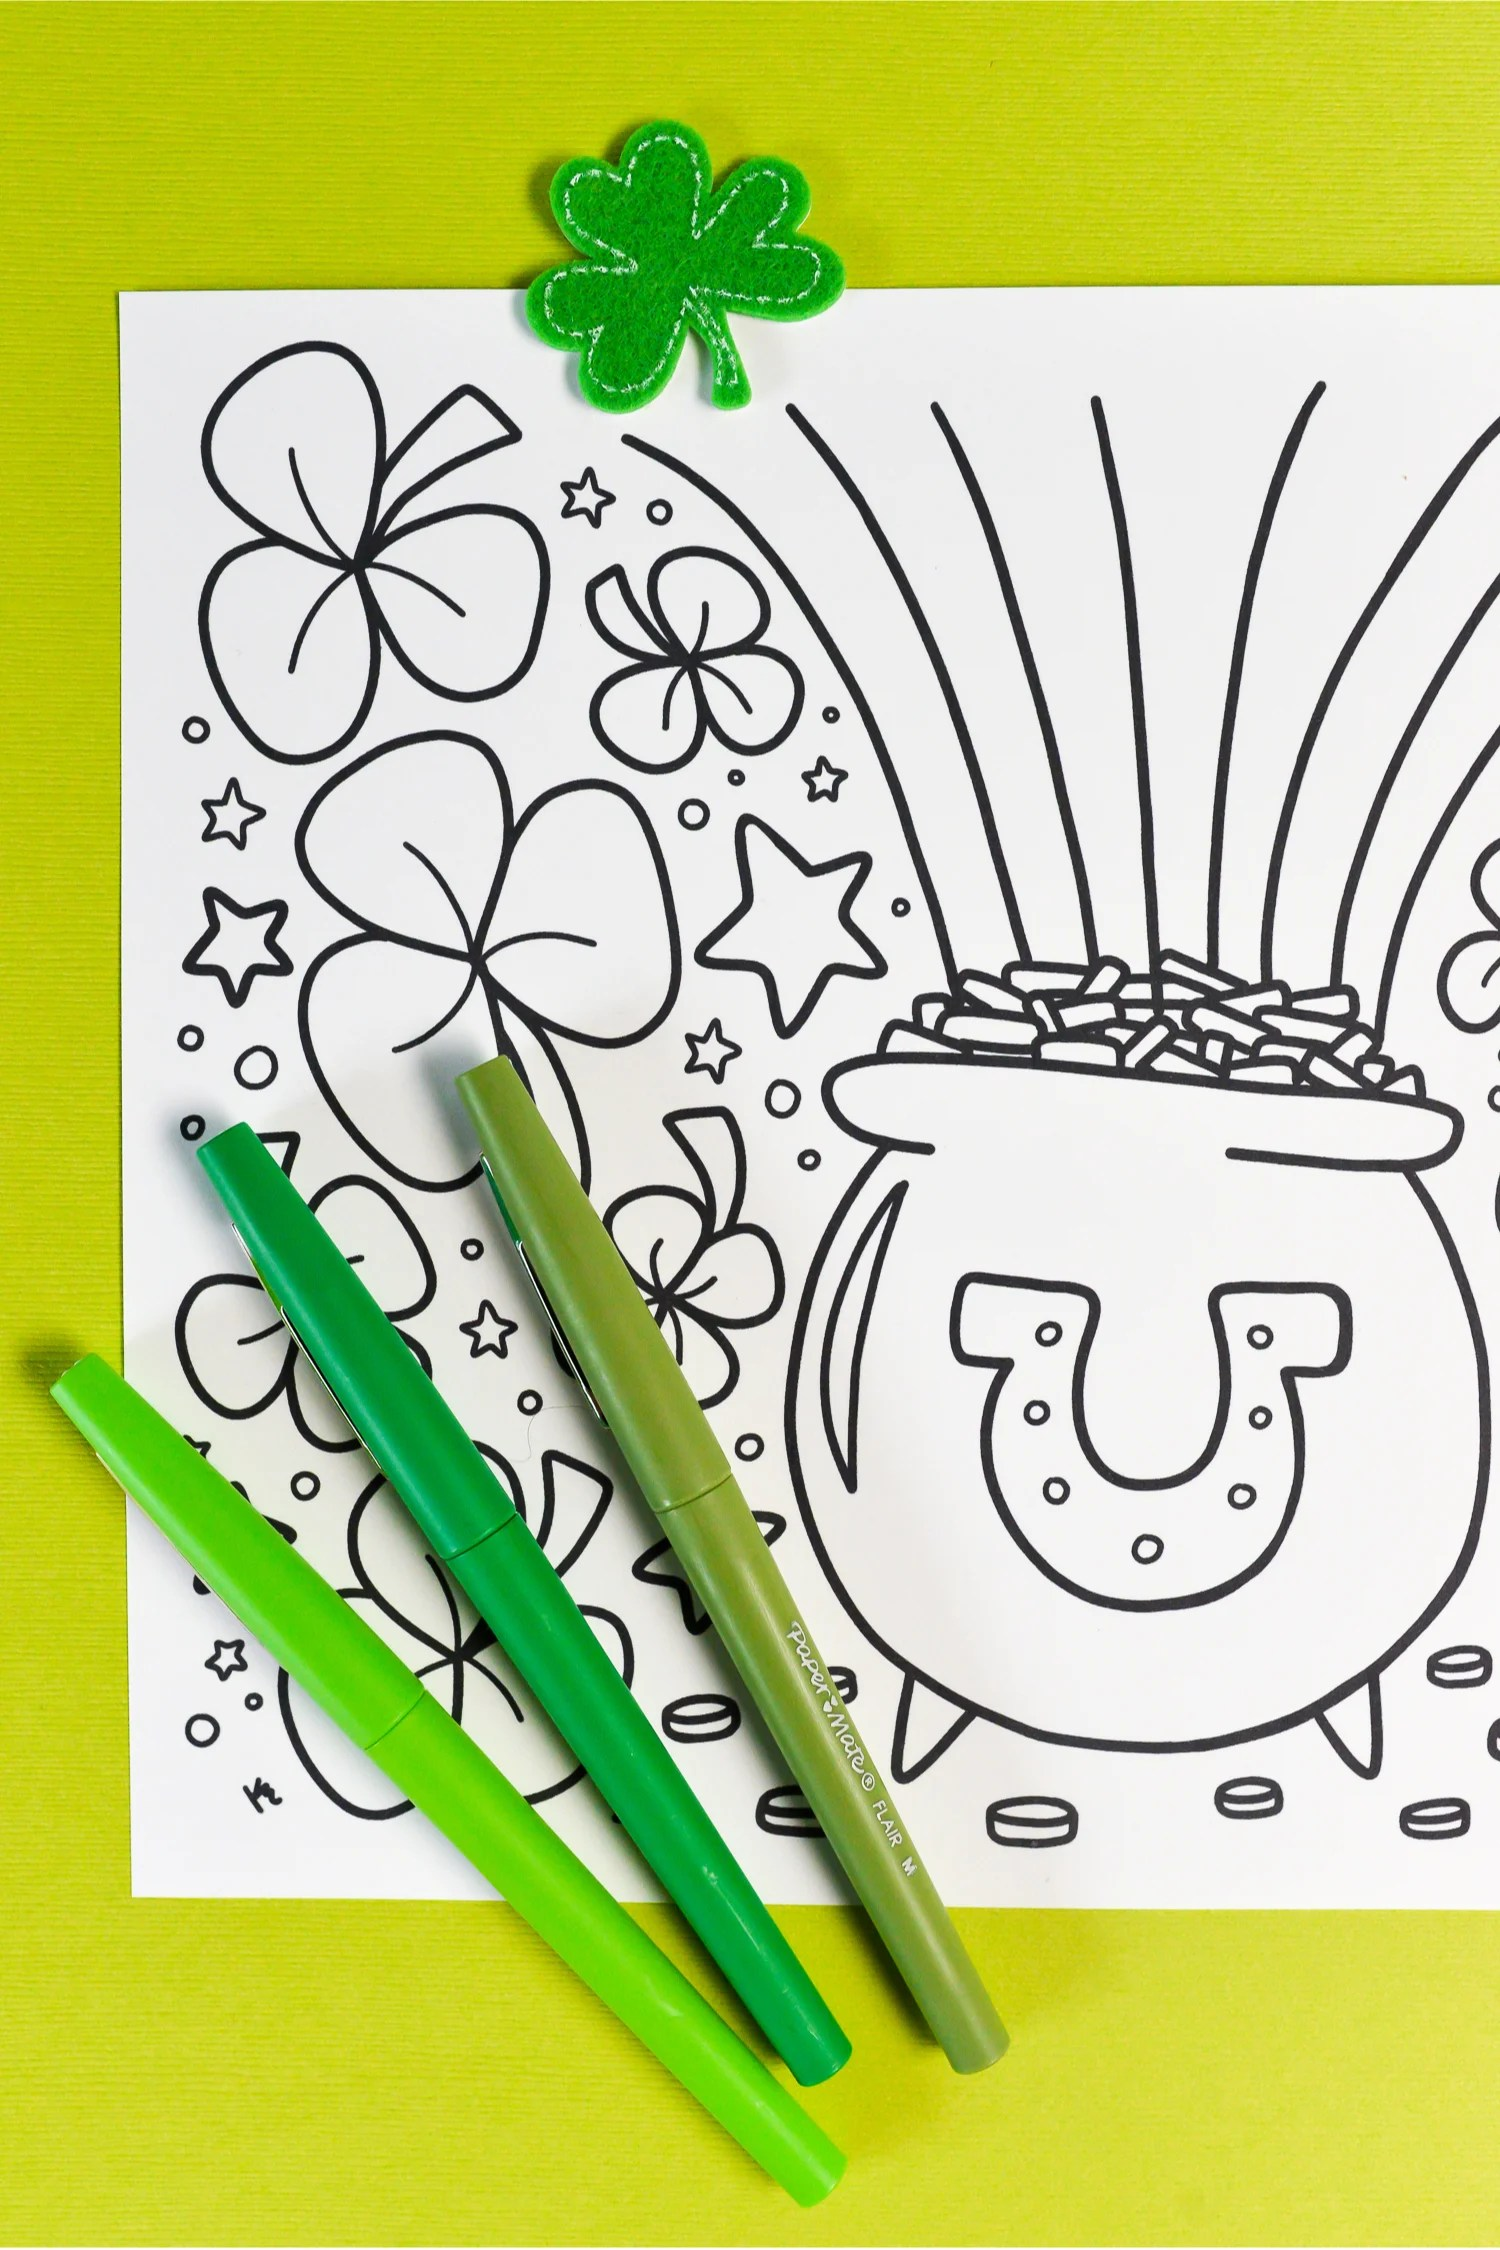 photo relating to St Patrick's Day Coloring Pages Printable called Free of charge Printable St. Patricks Working day Coloring Web page - Hey, Allows